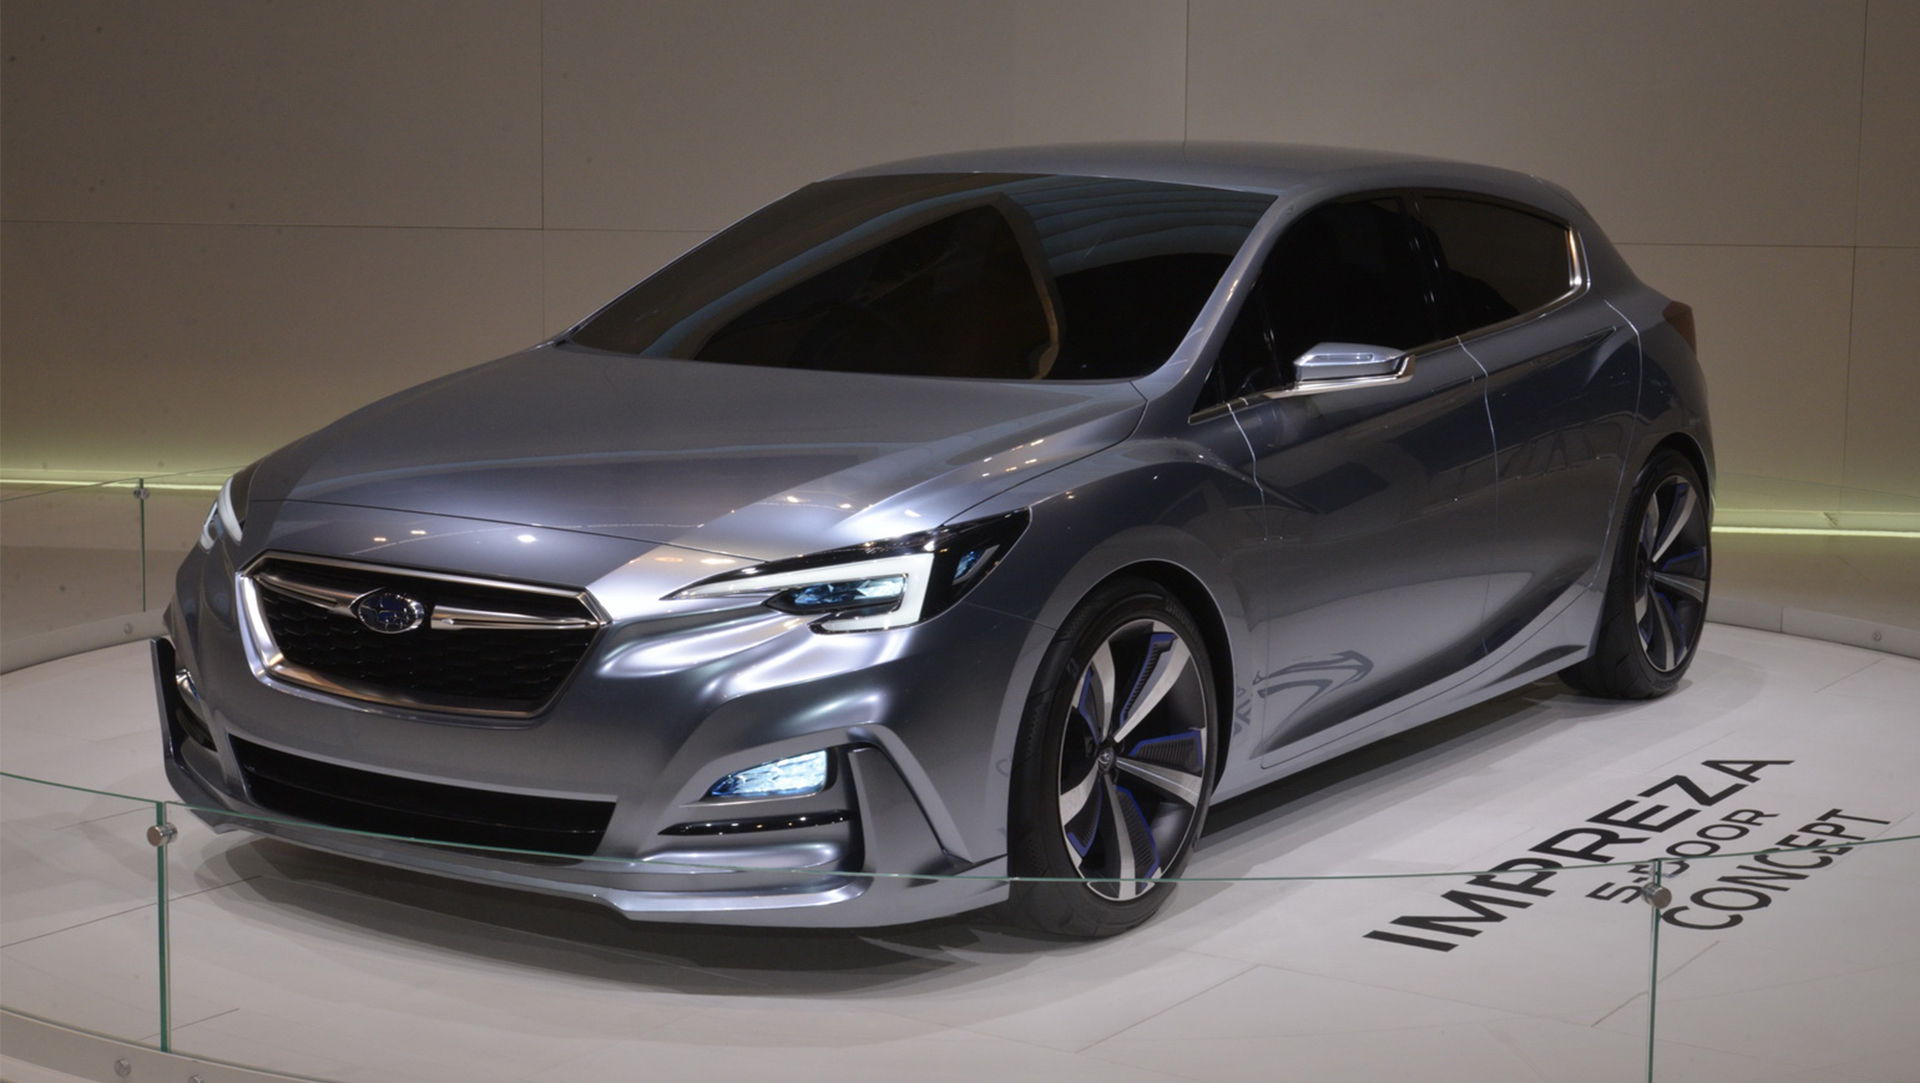 2018 Subaru Impreza Concept Car Photos Catalog 2019